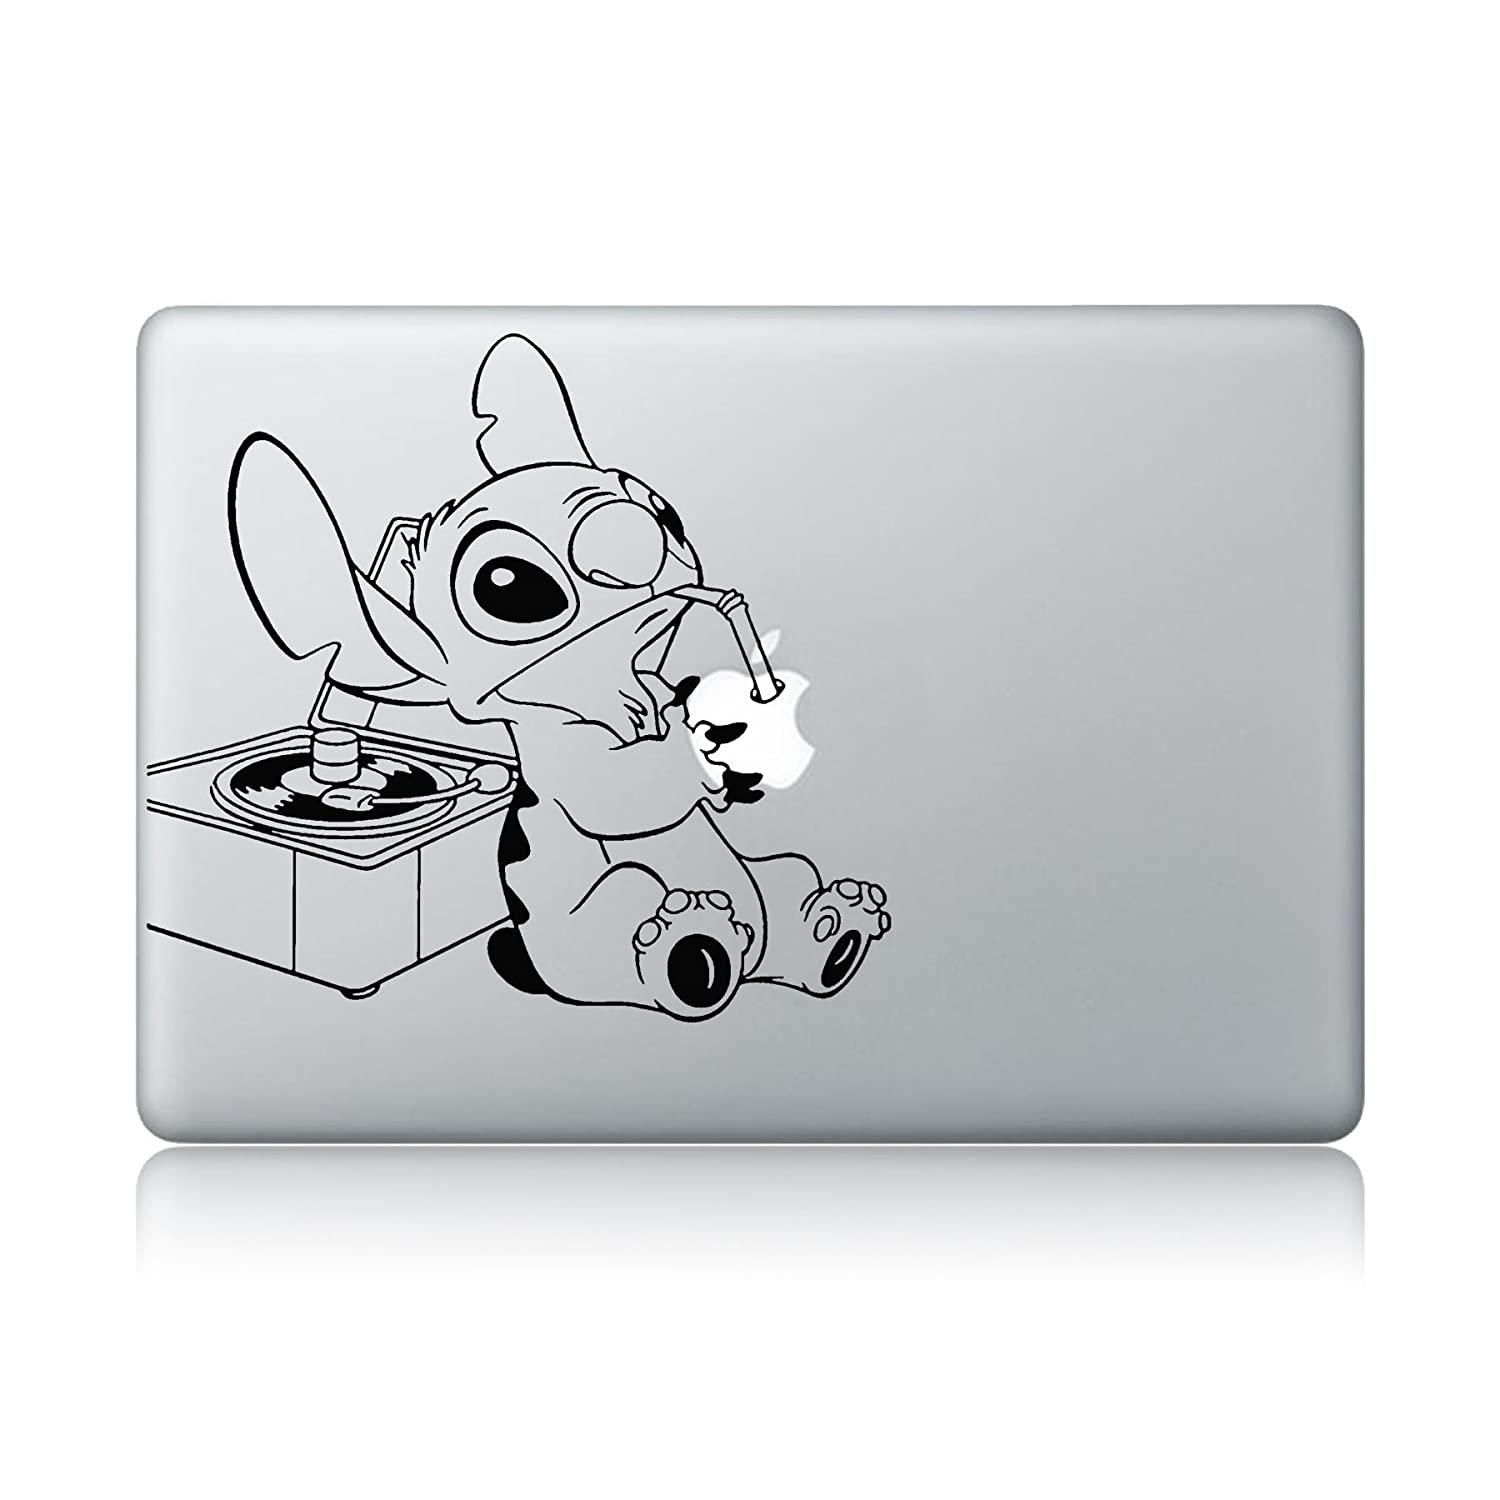 Amazon com stitch drinking apple juice apple macbook laptop vinyl sticker decal computers accessories